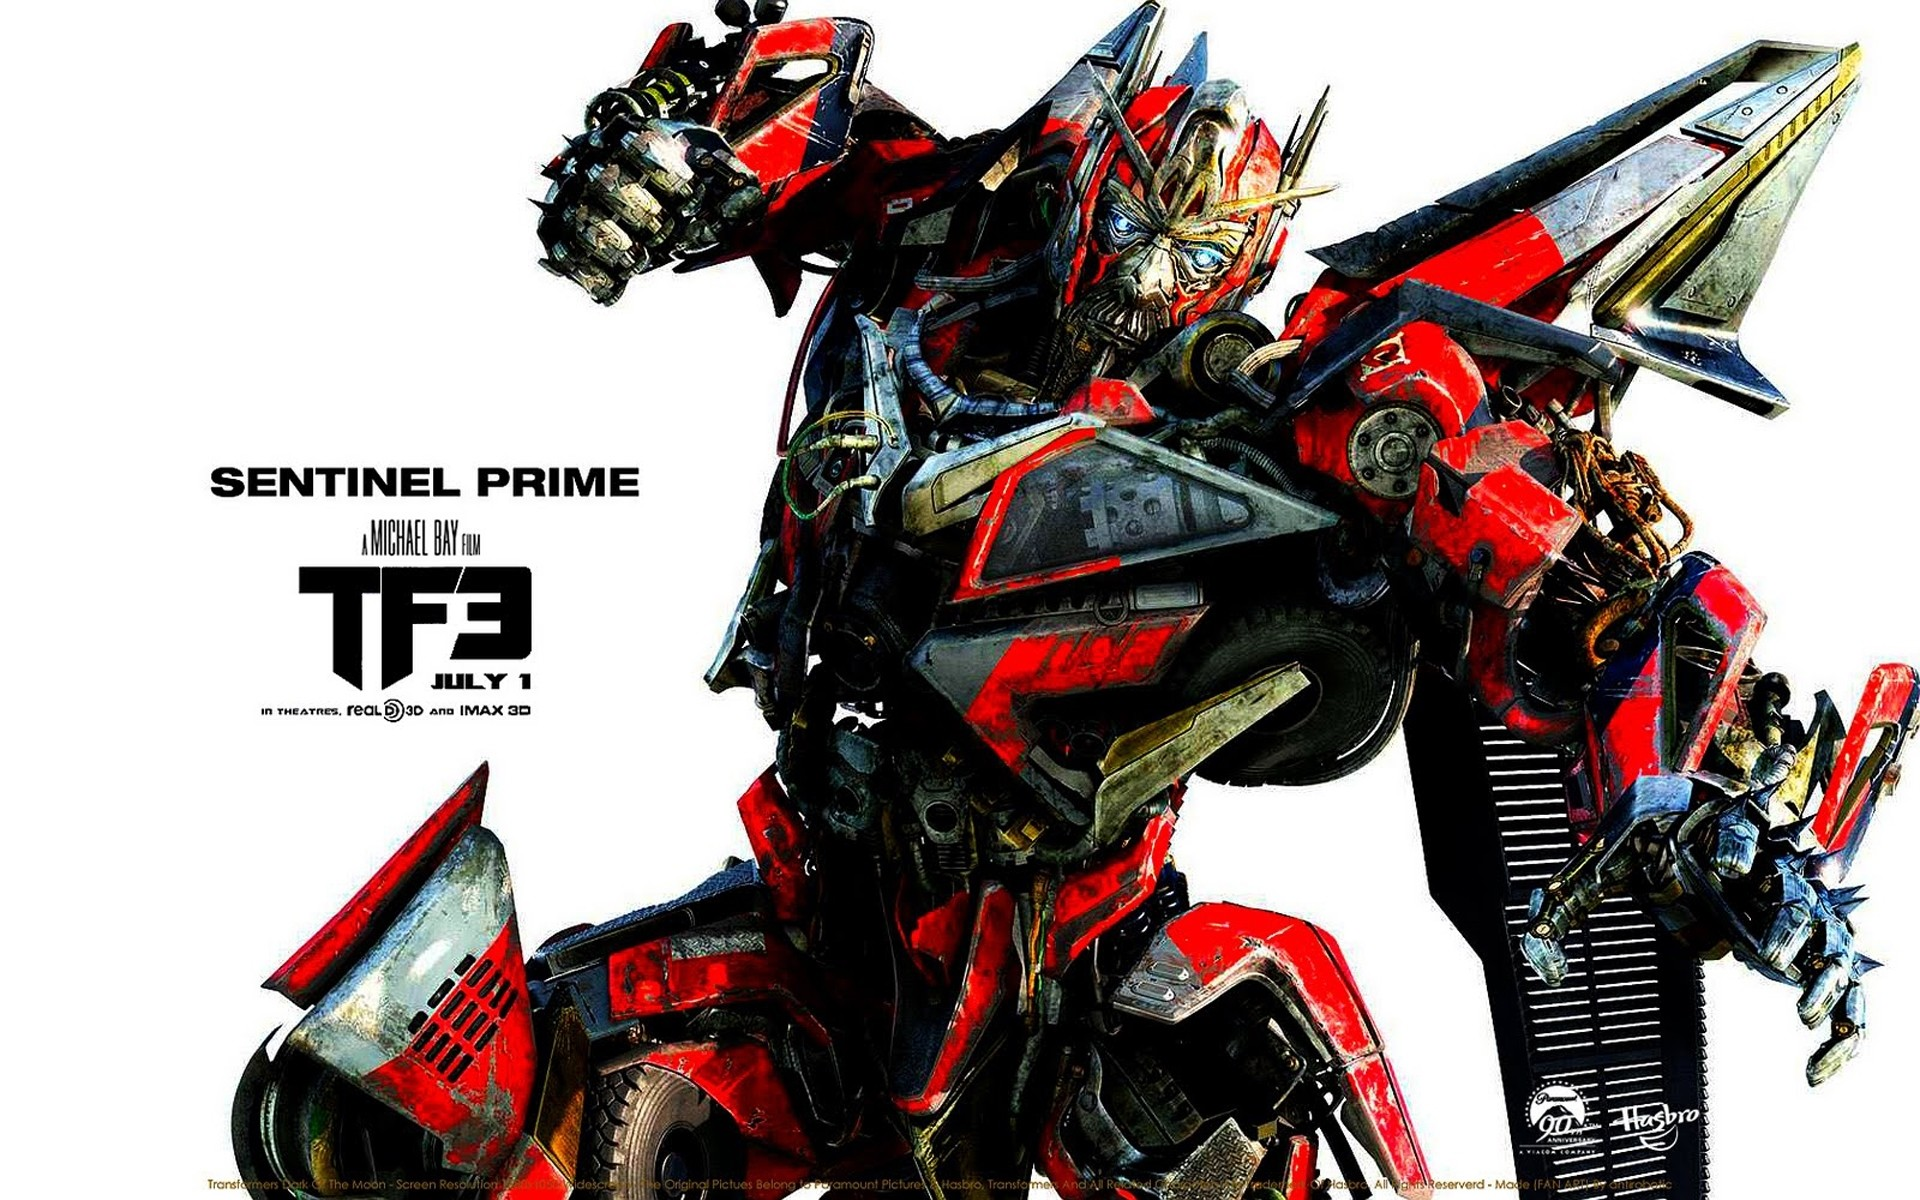 Transformers G1 Series Optimus Prime and Grimlock Wallpaper ·①